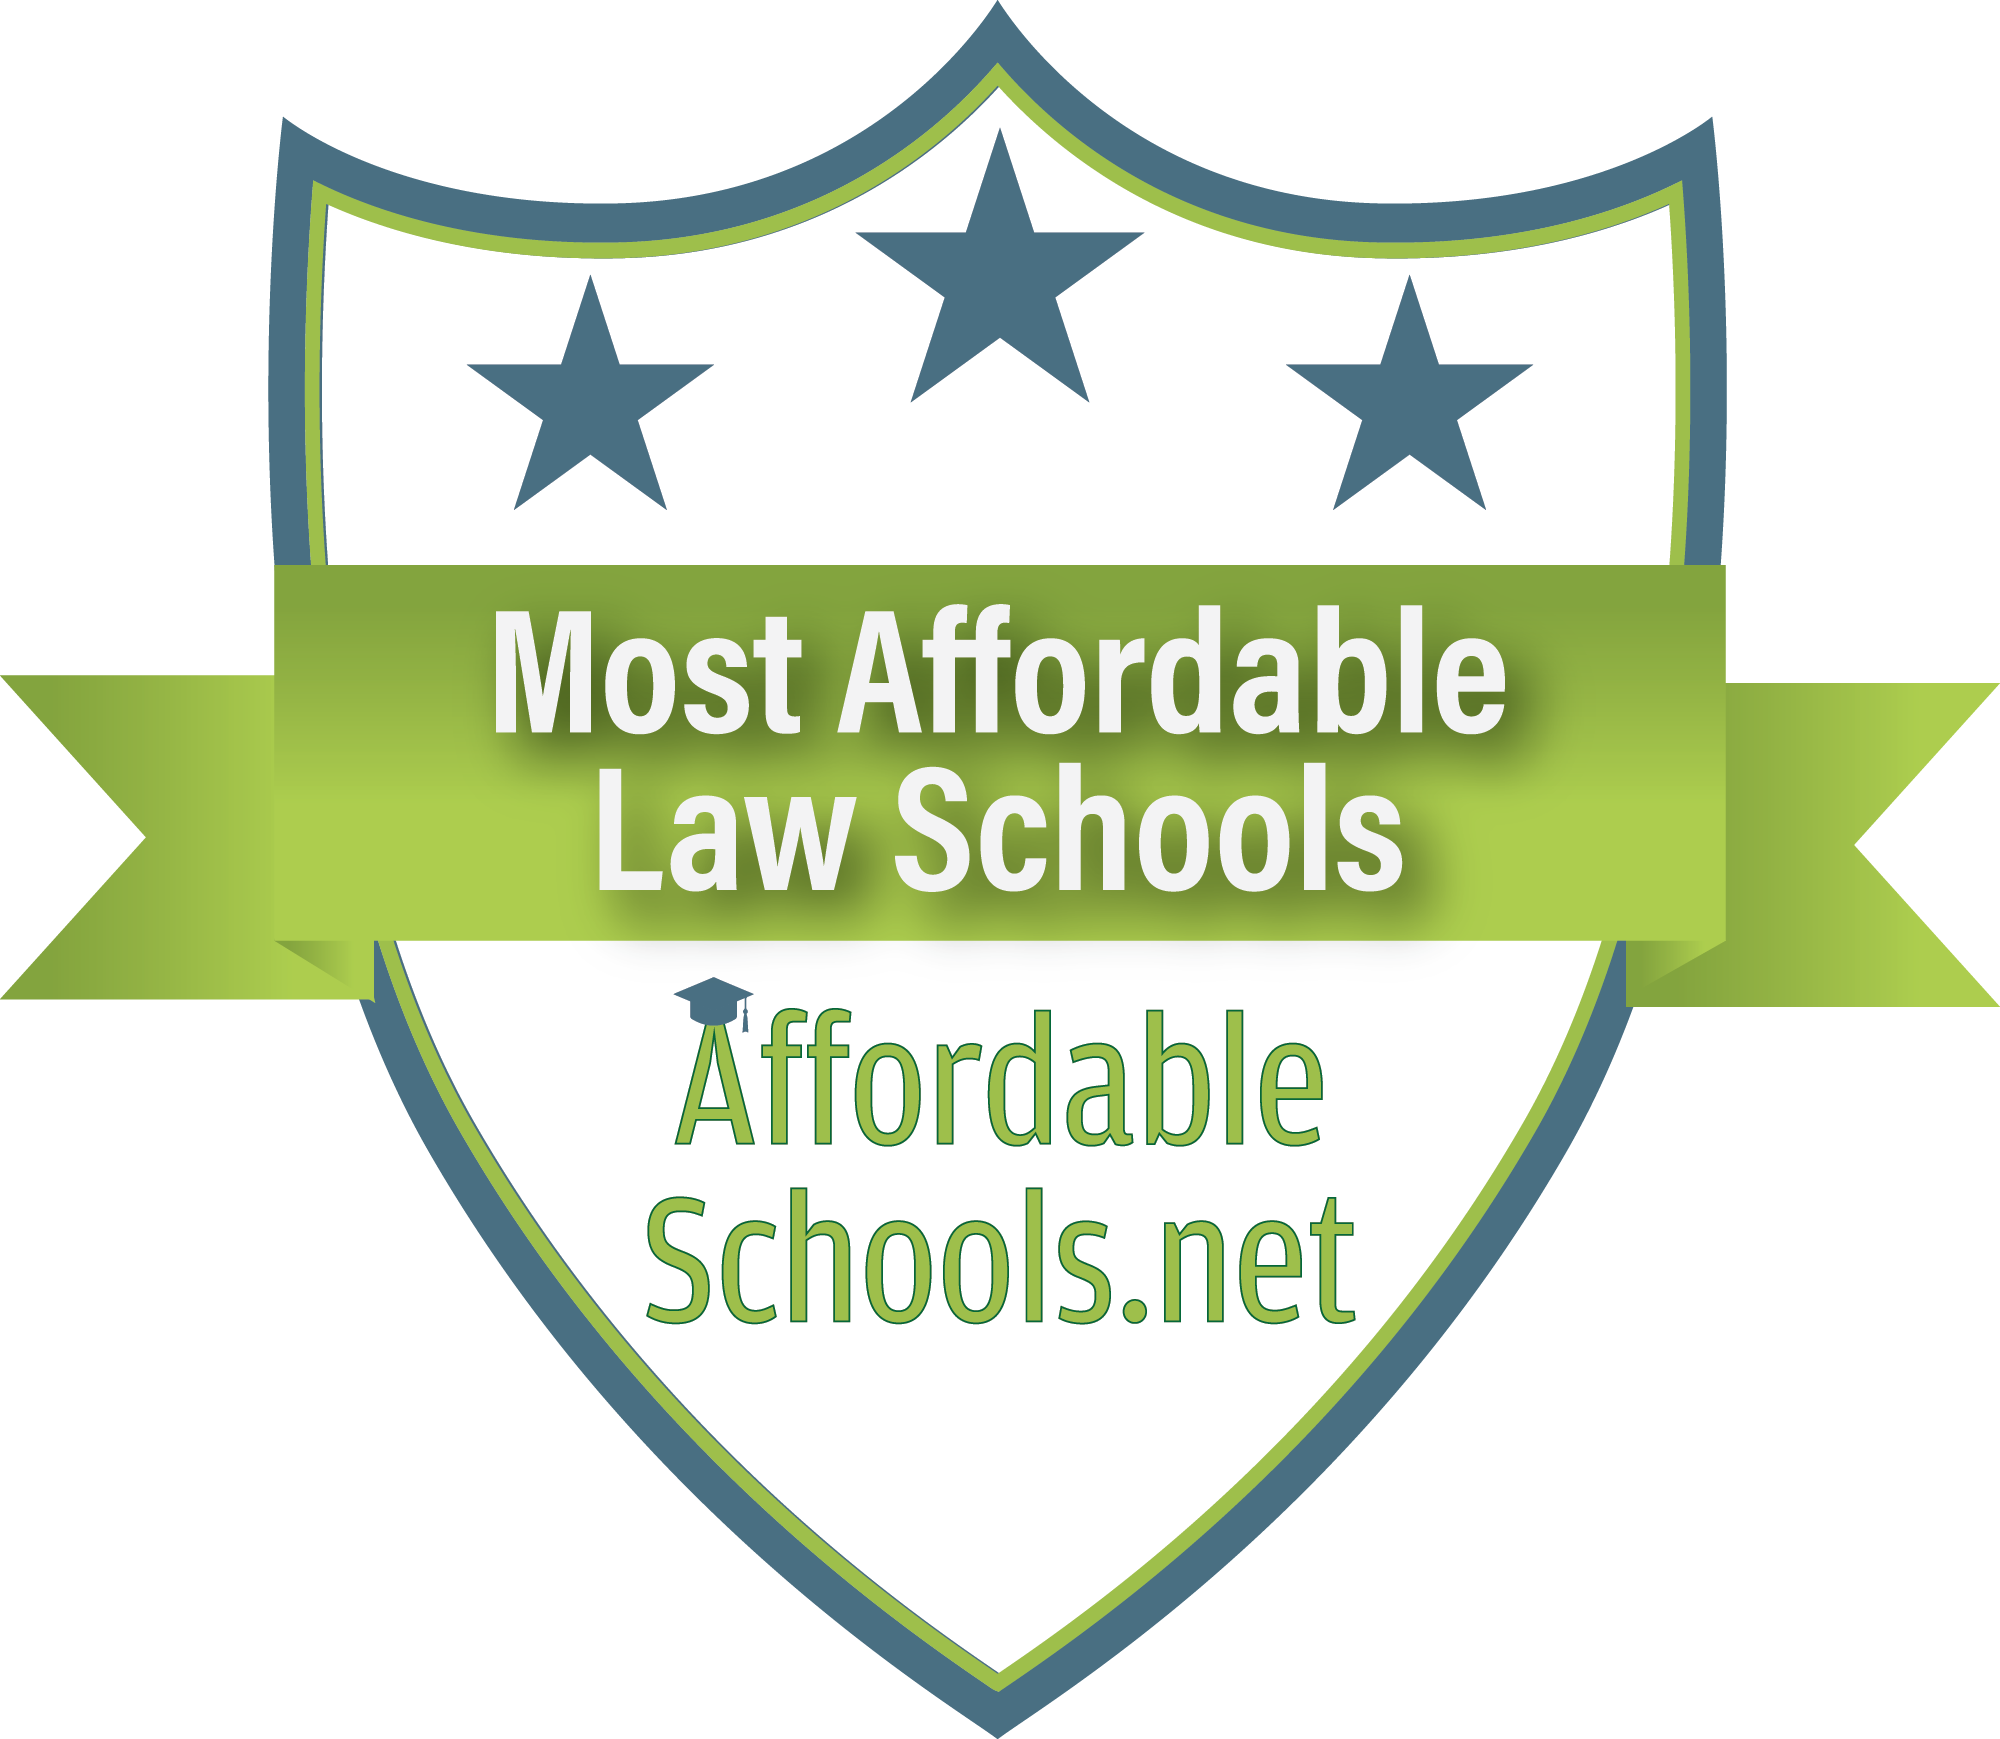 The 10 Most Affordable Law Schools in the United States - Affordable